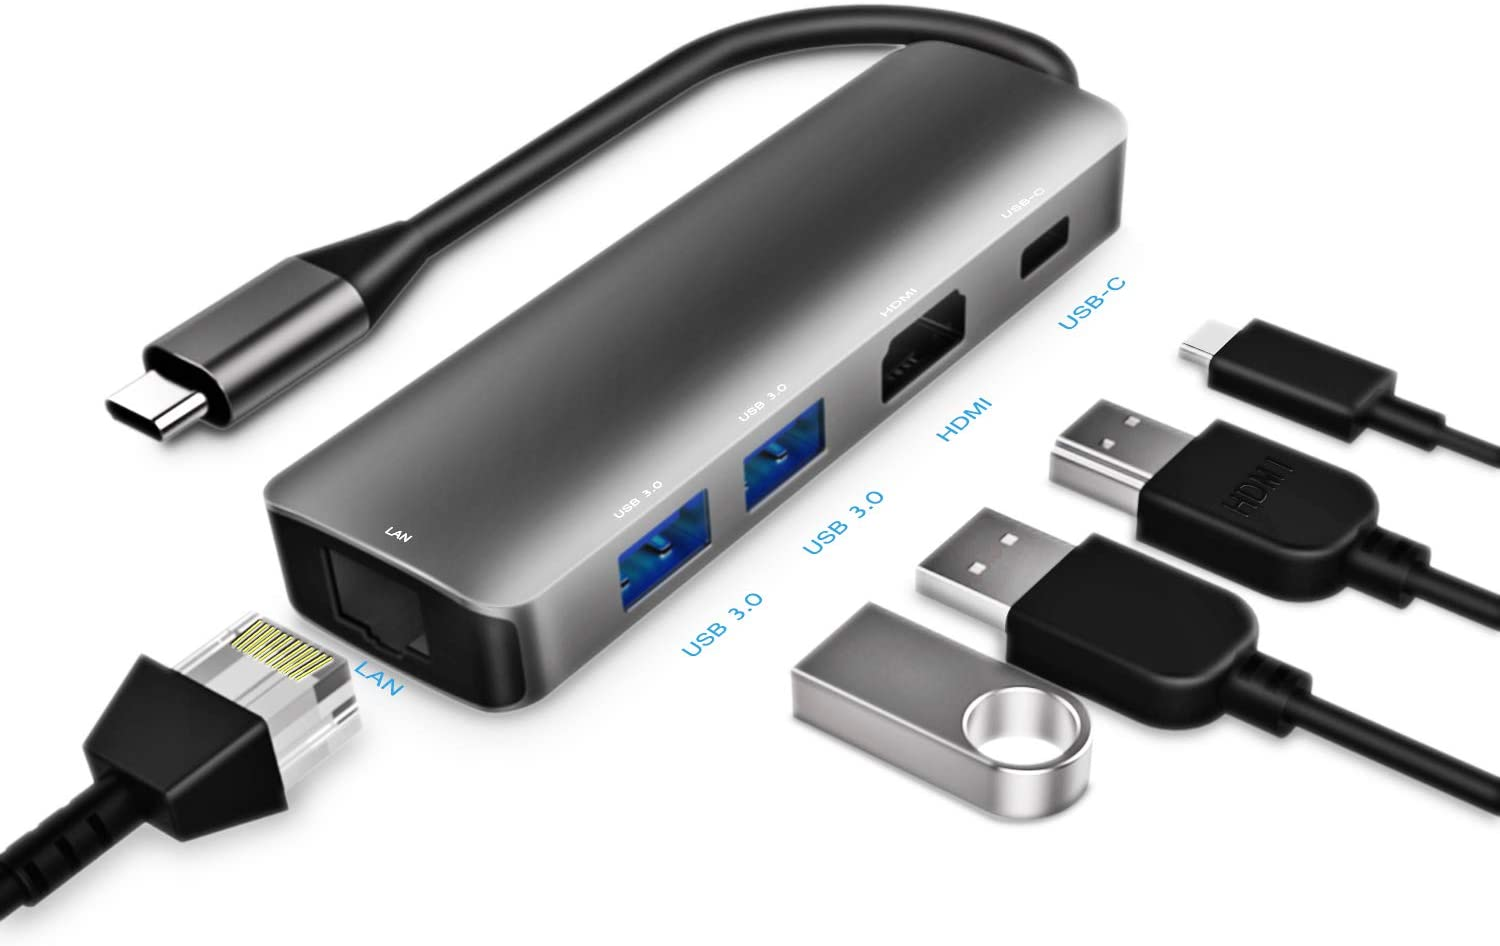 USB C Hub, Aluminum Multi Port Type C Adapter with Gigabit Ethernet, 4K USB C to HDMI, 2 USB 3.0, 60W USB C PD Power Delivery, Compatible with MacBook Pro 2018/2017/2016, XPS, Chromebook and More